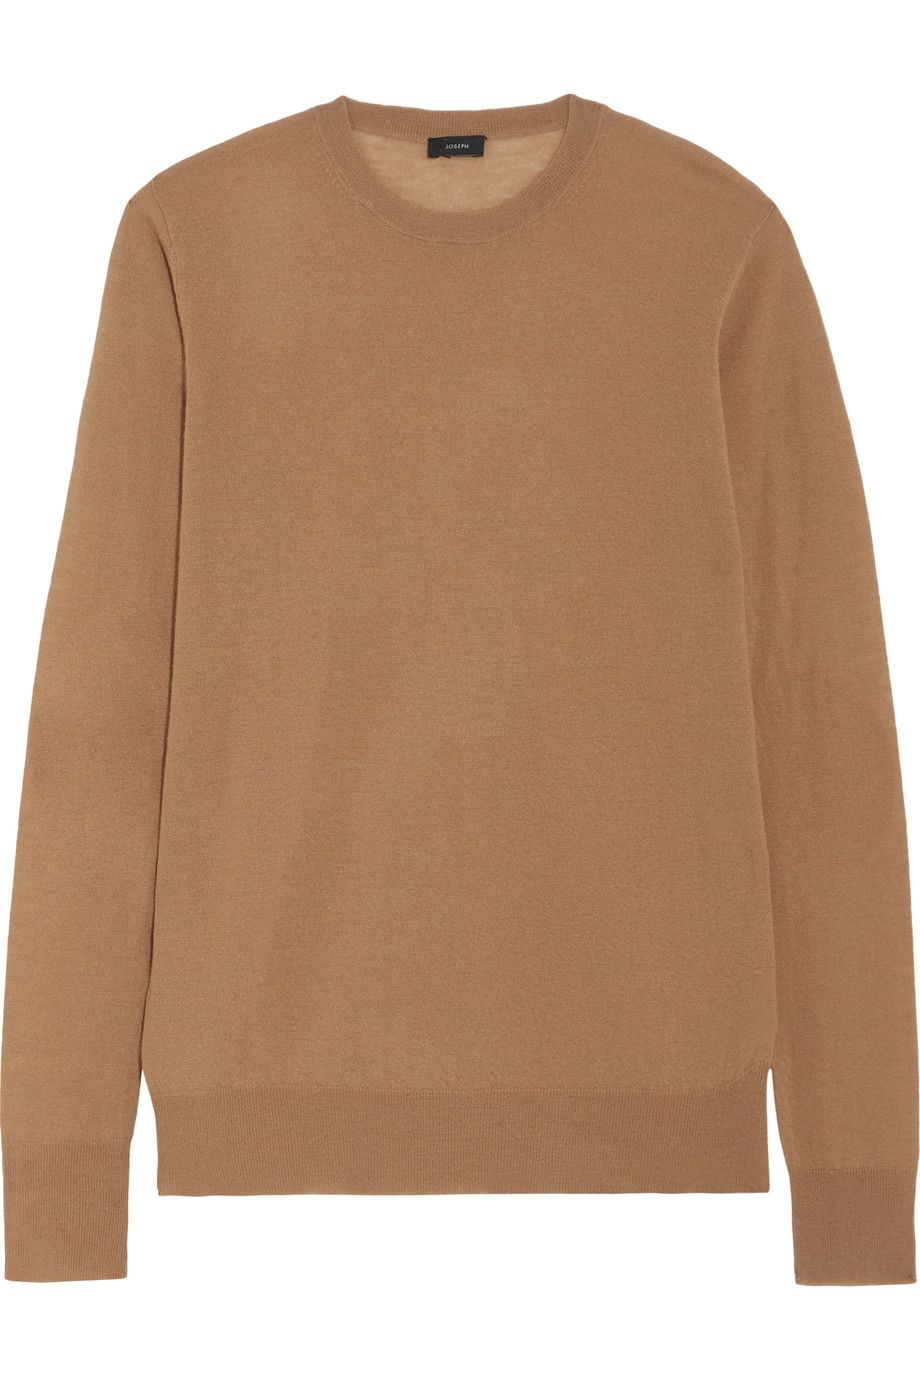 Shop on-sale Joseph Paneled cashmere sweater. Browse other ...